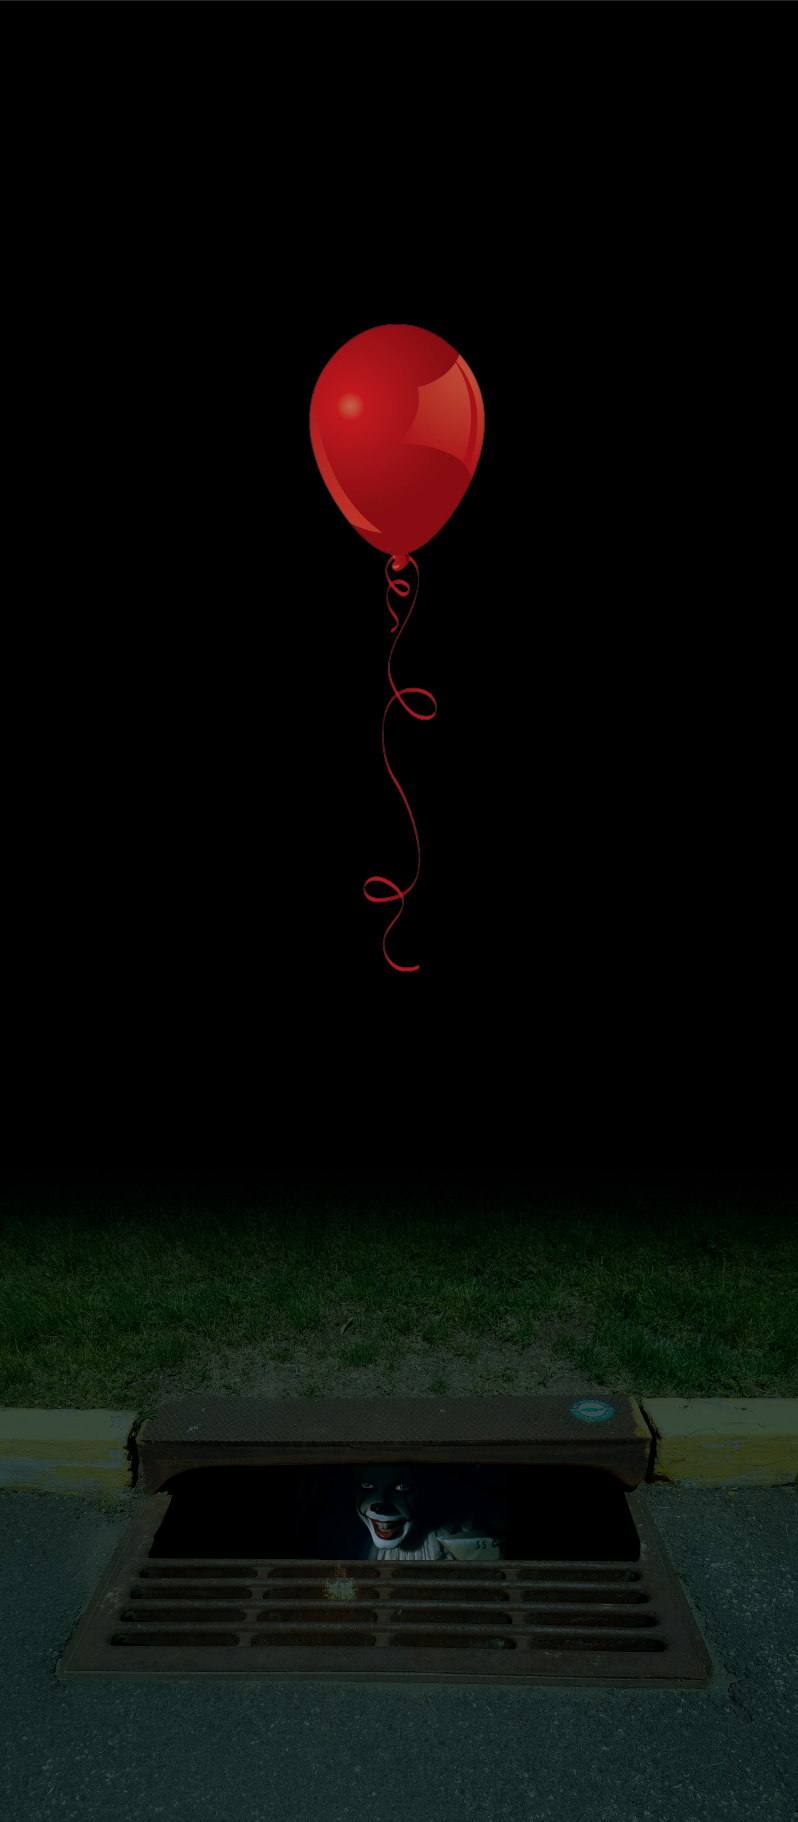 Pennywise Red Balloon and Sewer Drain Door wrap in 2019 798x1822